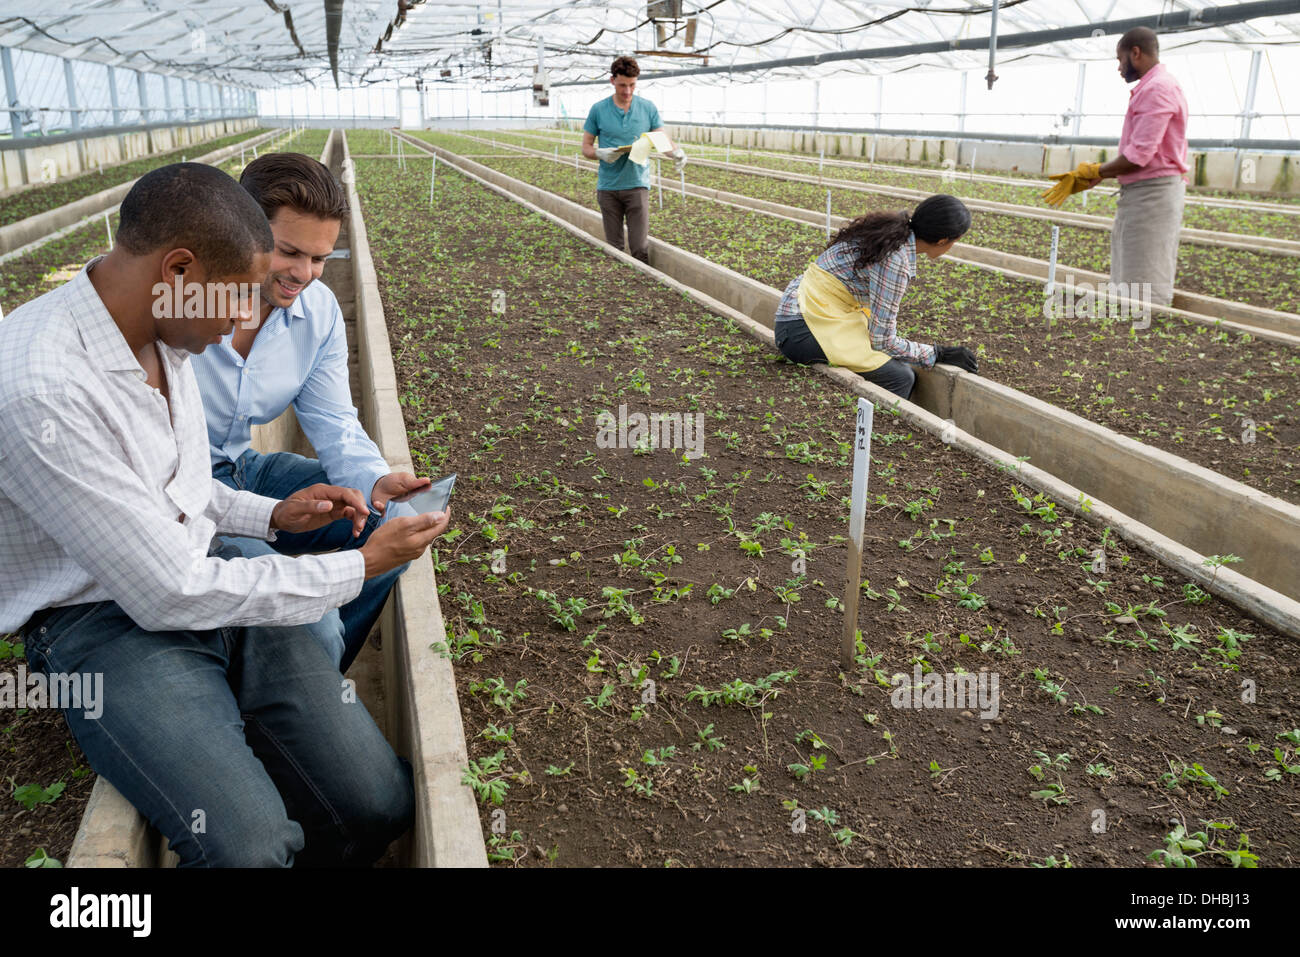 A commercial greenhouse in a plant nursery growing organic flowers. Two men using a digital tablet. - Stock Image